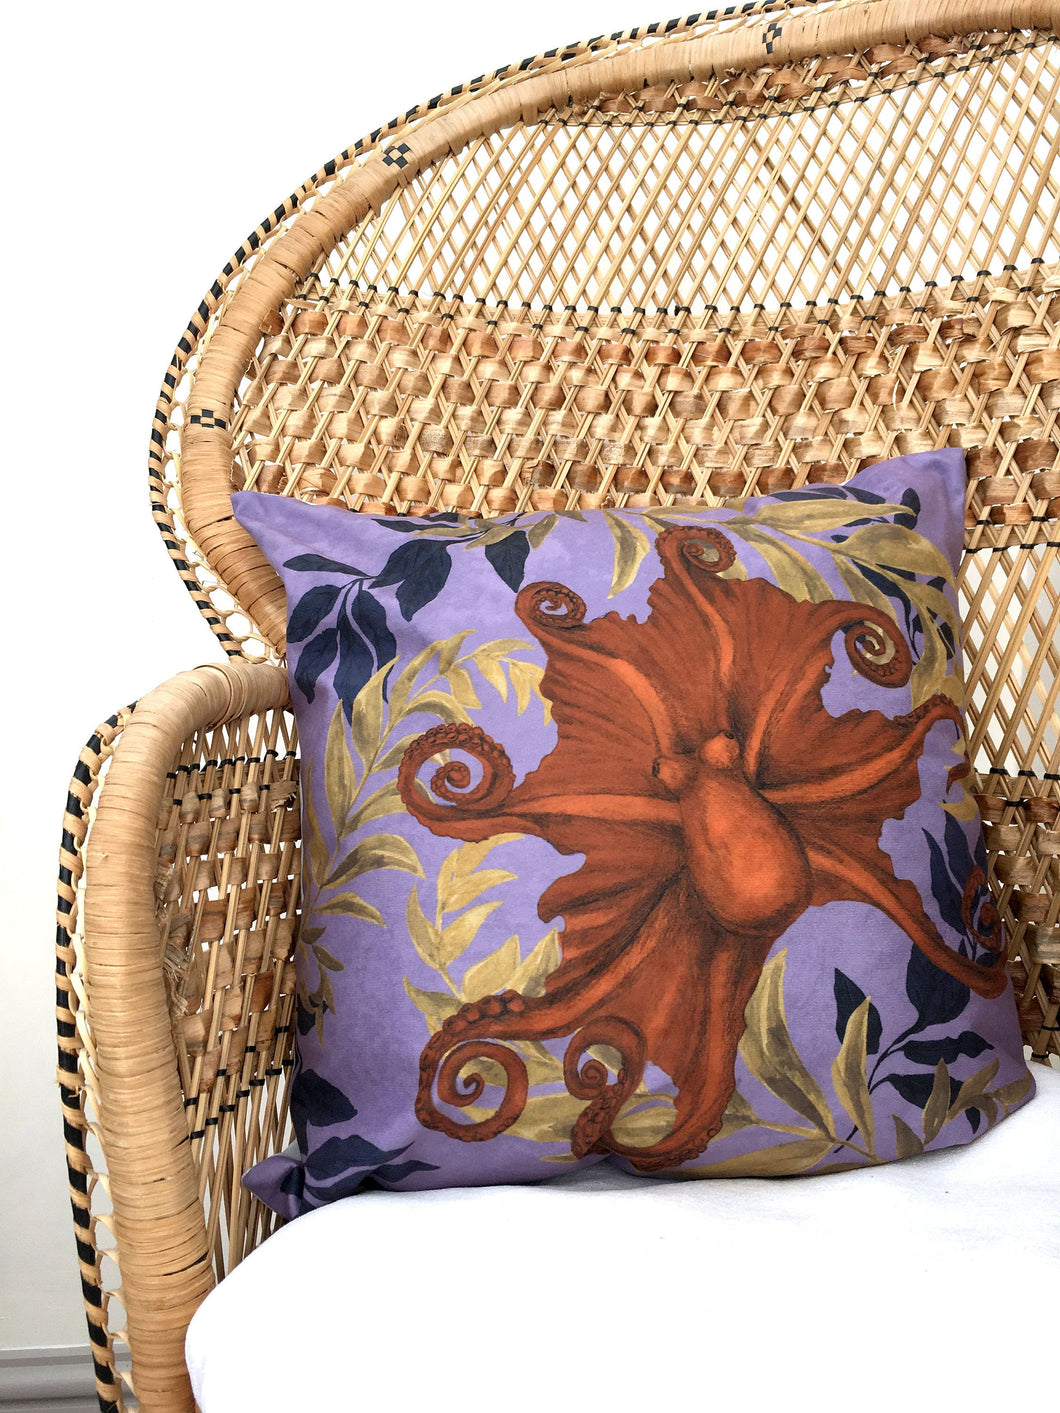 Octopus Cushion 'Octpoda' In Vegan friendly Suede with watercolour hand painted design, purple cushion